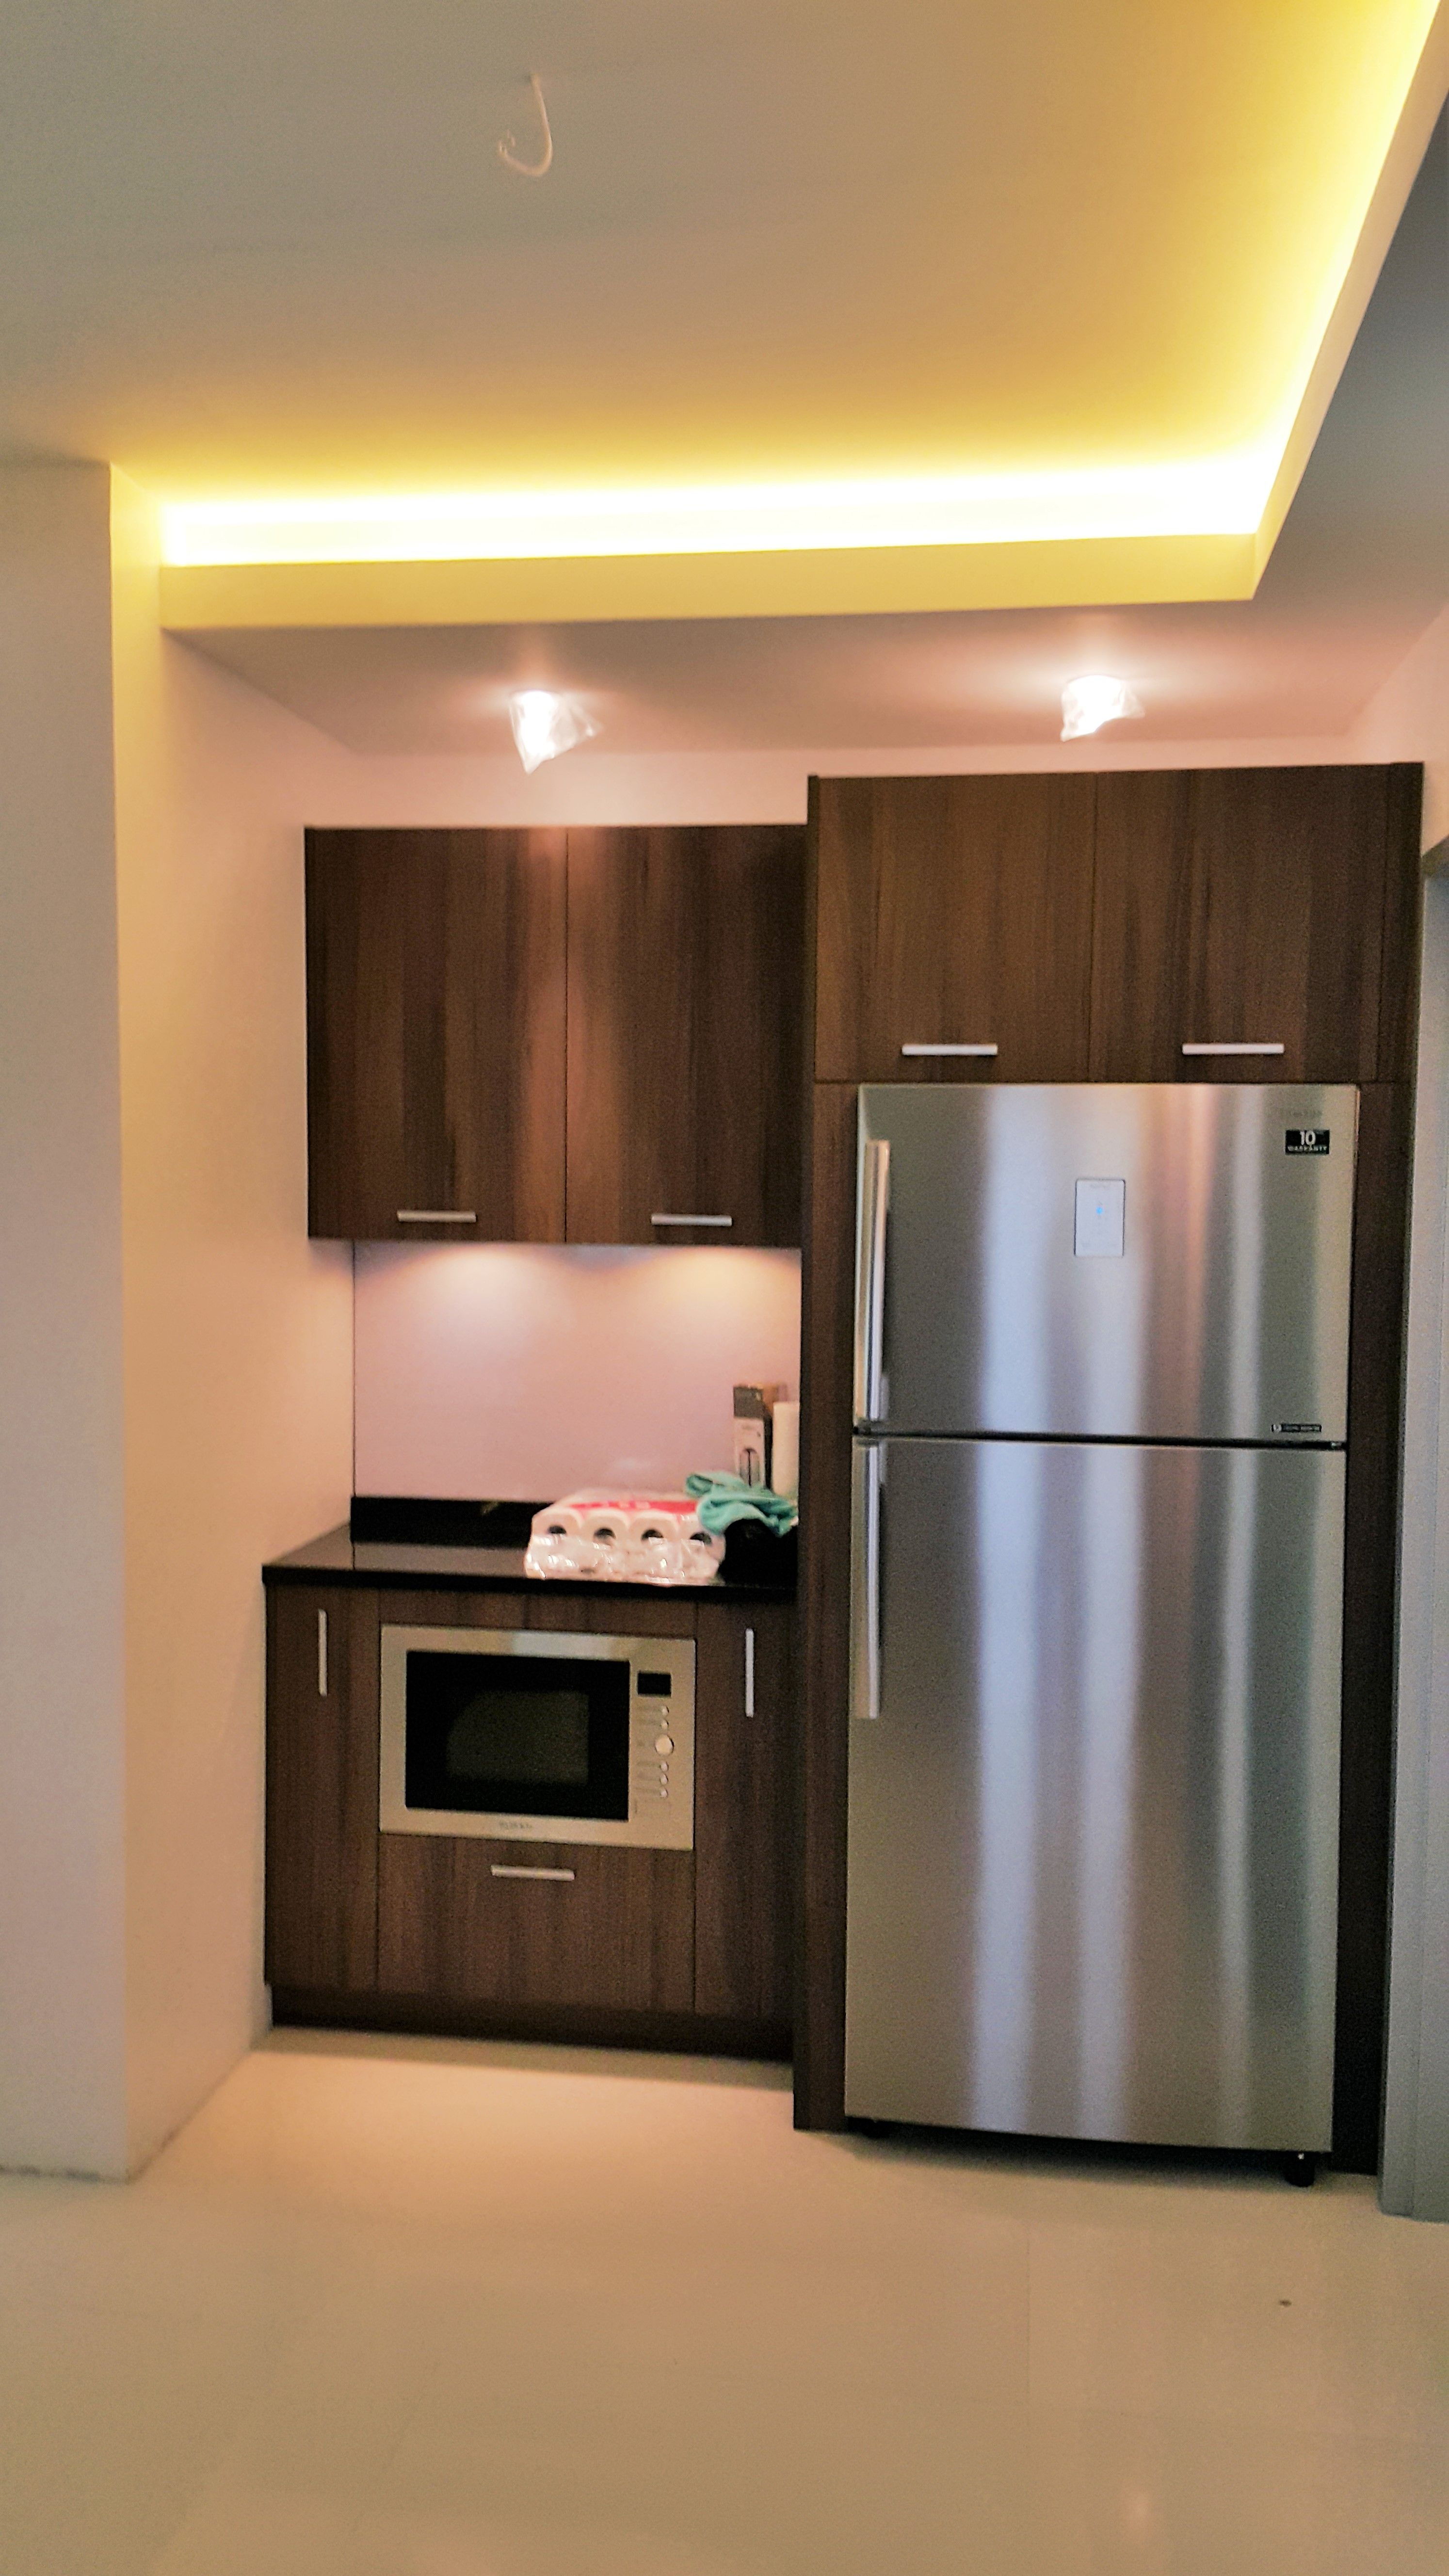 Modular Kitchen Cabinets With Built In Microwave Oven And Down